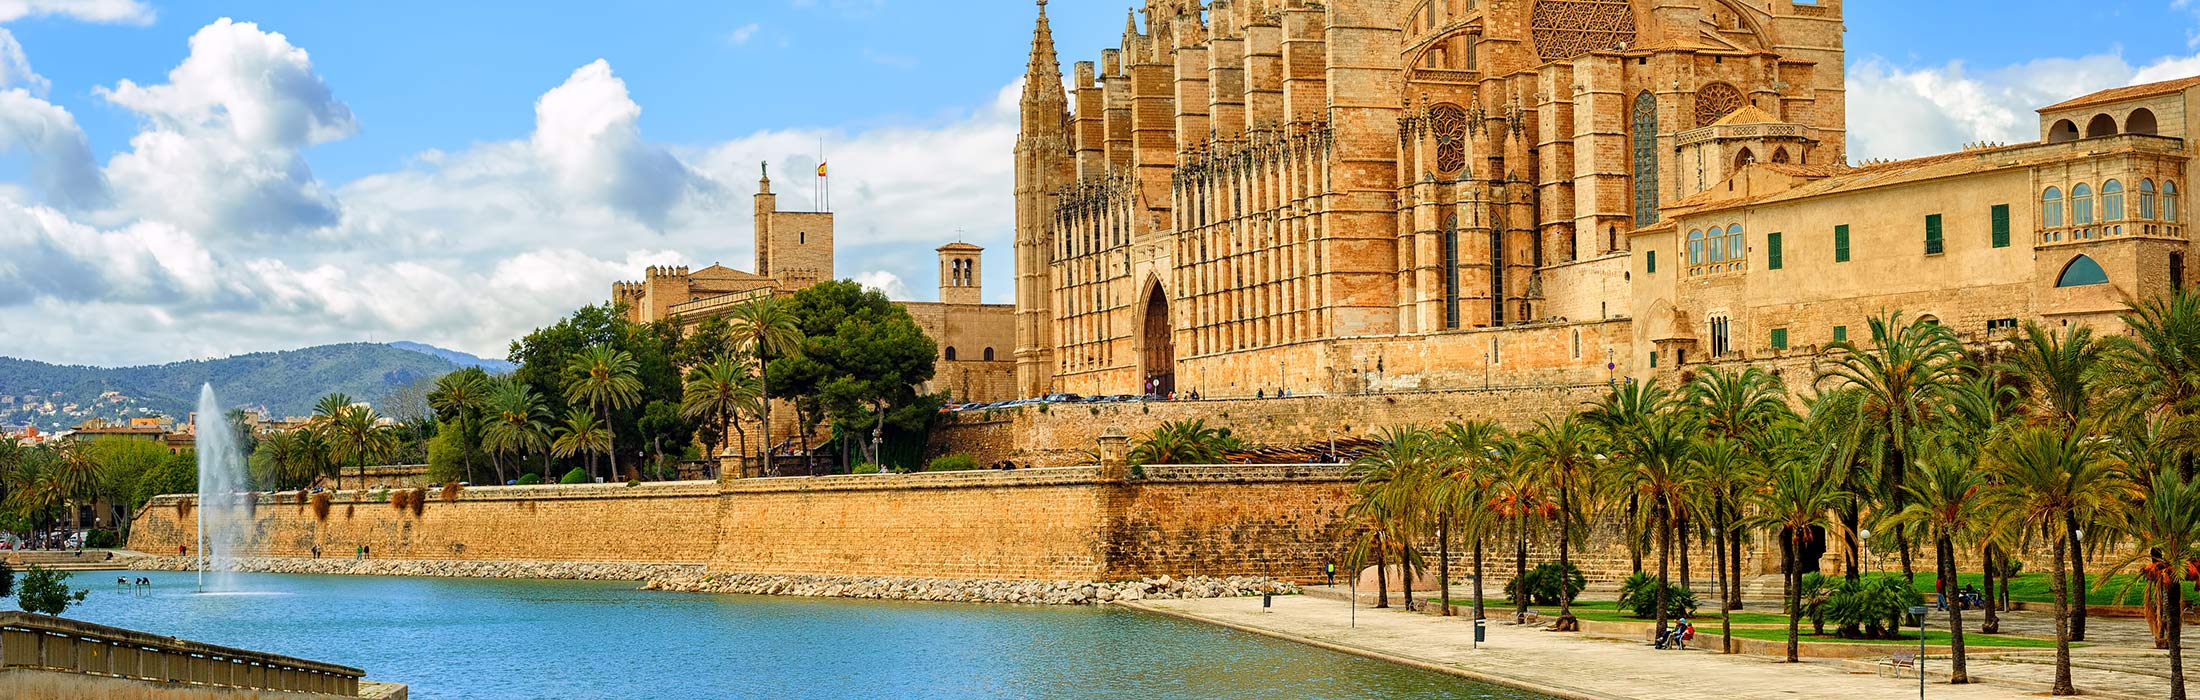 top yacht charter destinations mediterranean spain mallorca top slider 2